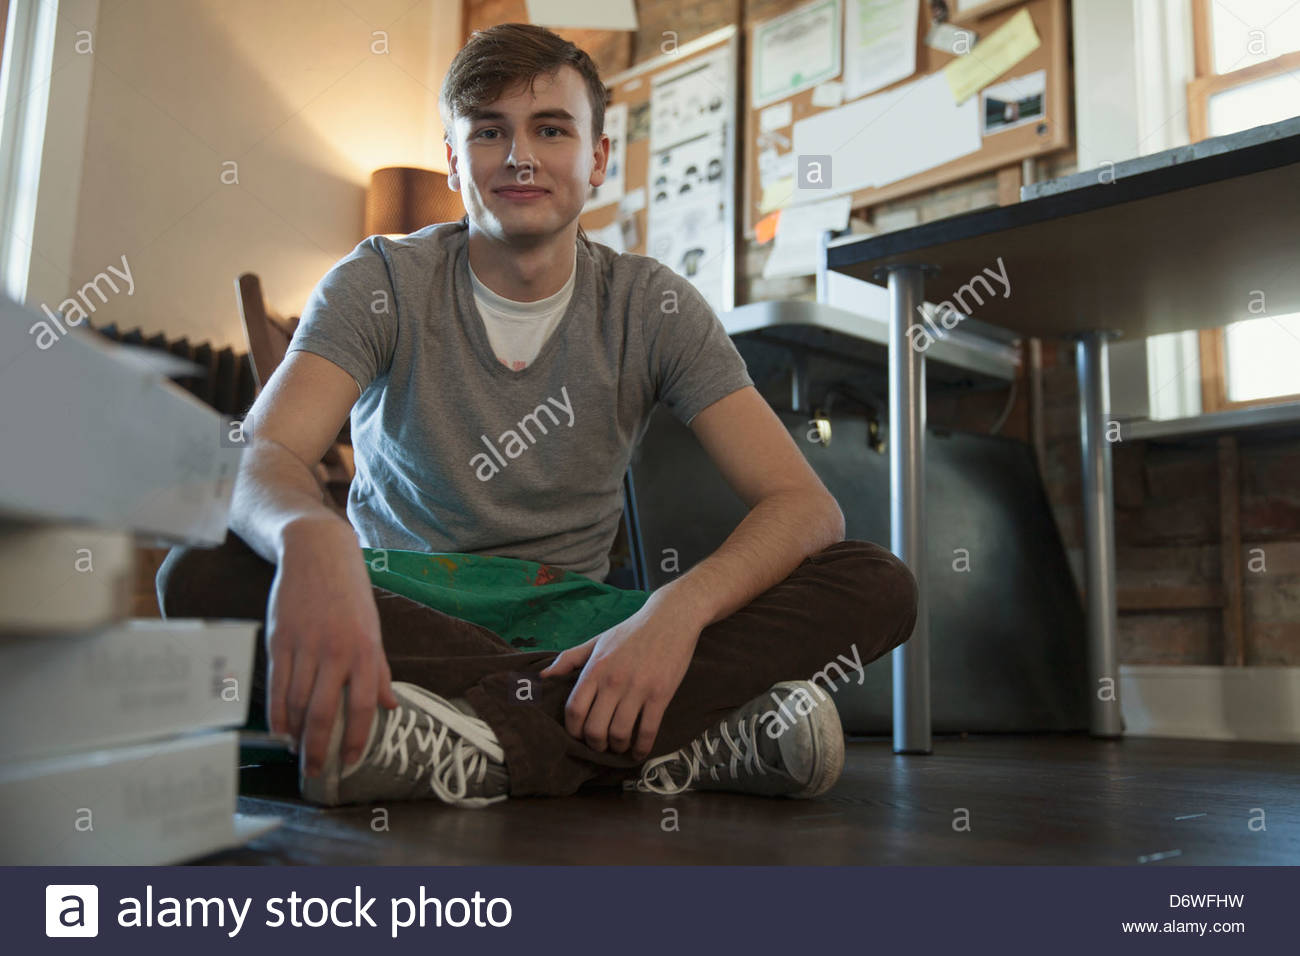 Portrait of young male design professional sitting on floor at workshop - Stock Image